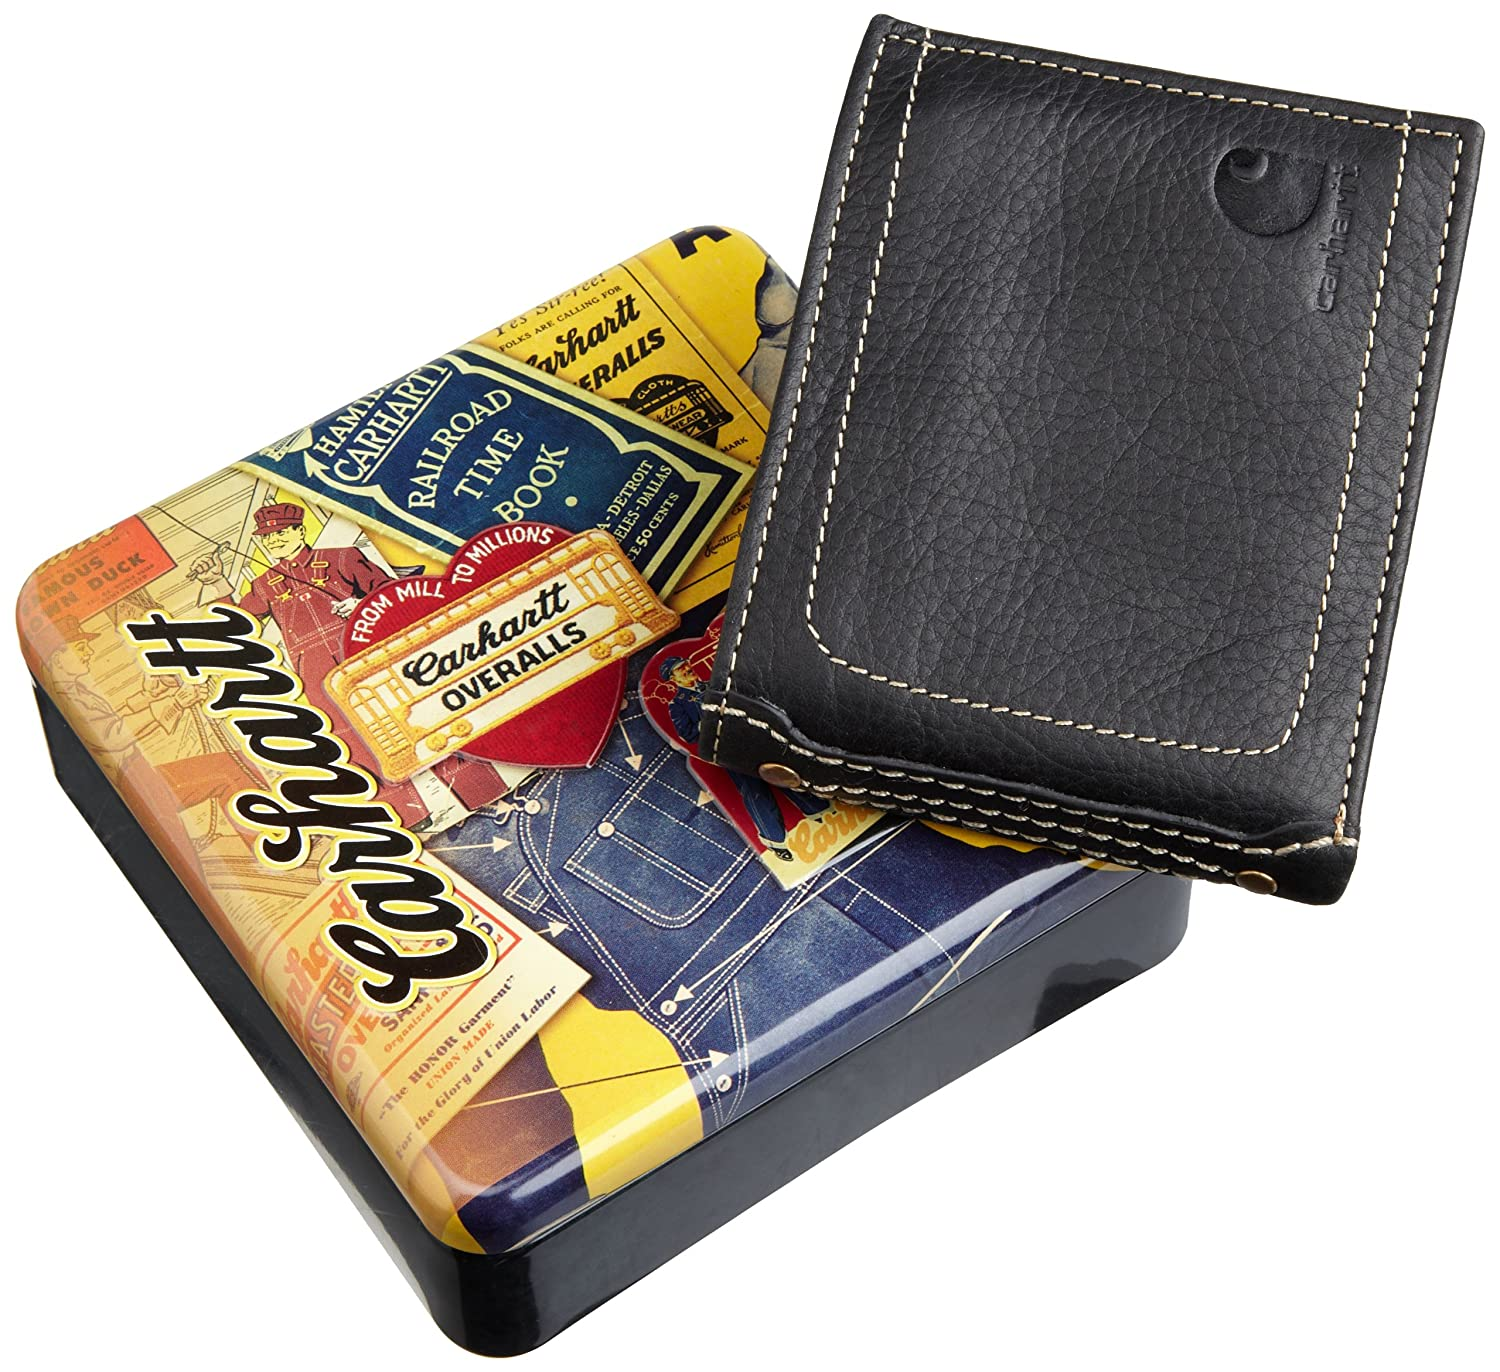 Coin Purses & Holders Usa Oil Soft And Solid Red Passport Cover Travel Passport Holder Built In Rfid Blocking Protect Personal Information Sale Overall Discount 50-70%